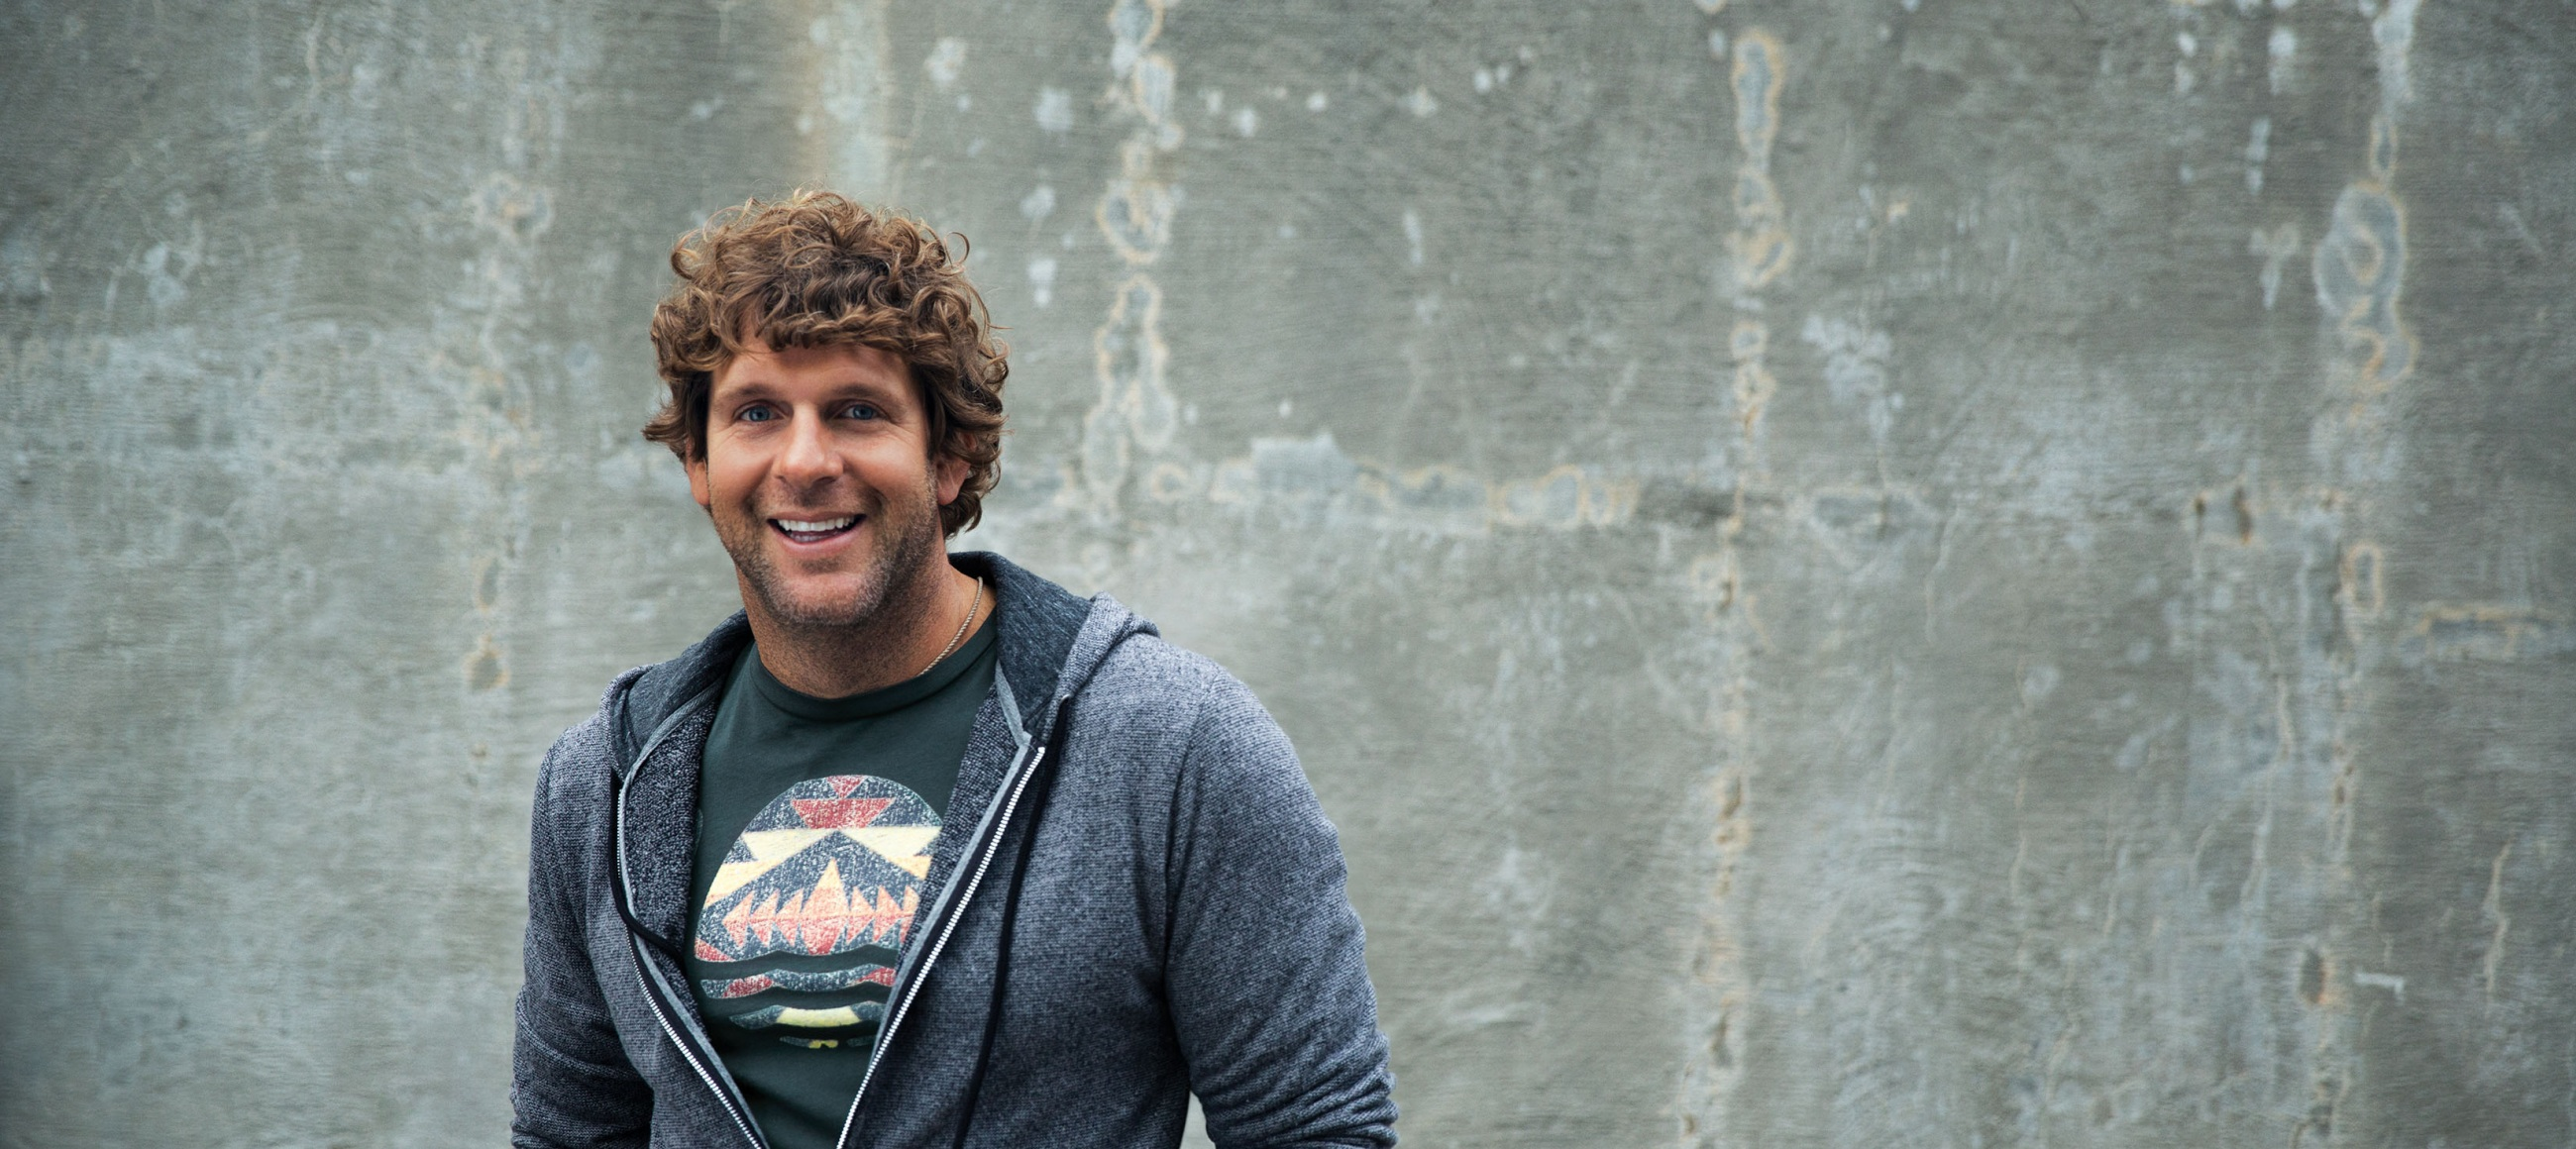 Billy Currington Drinking Town with a Football Problem